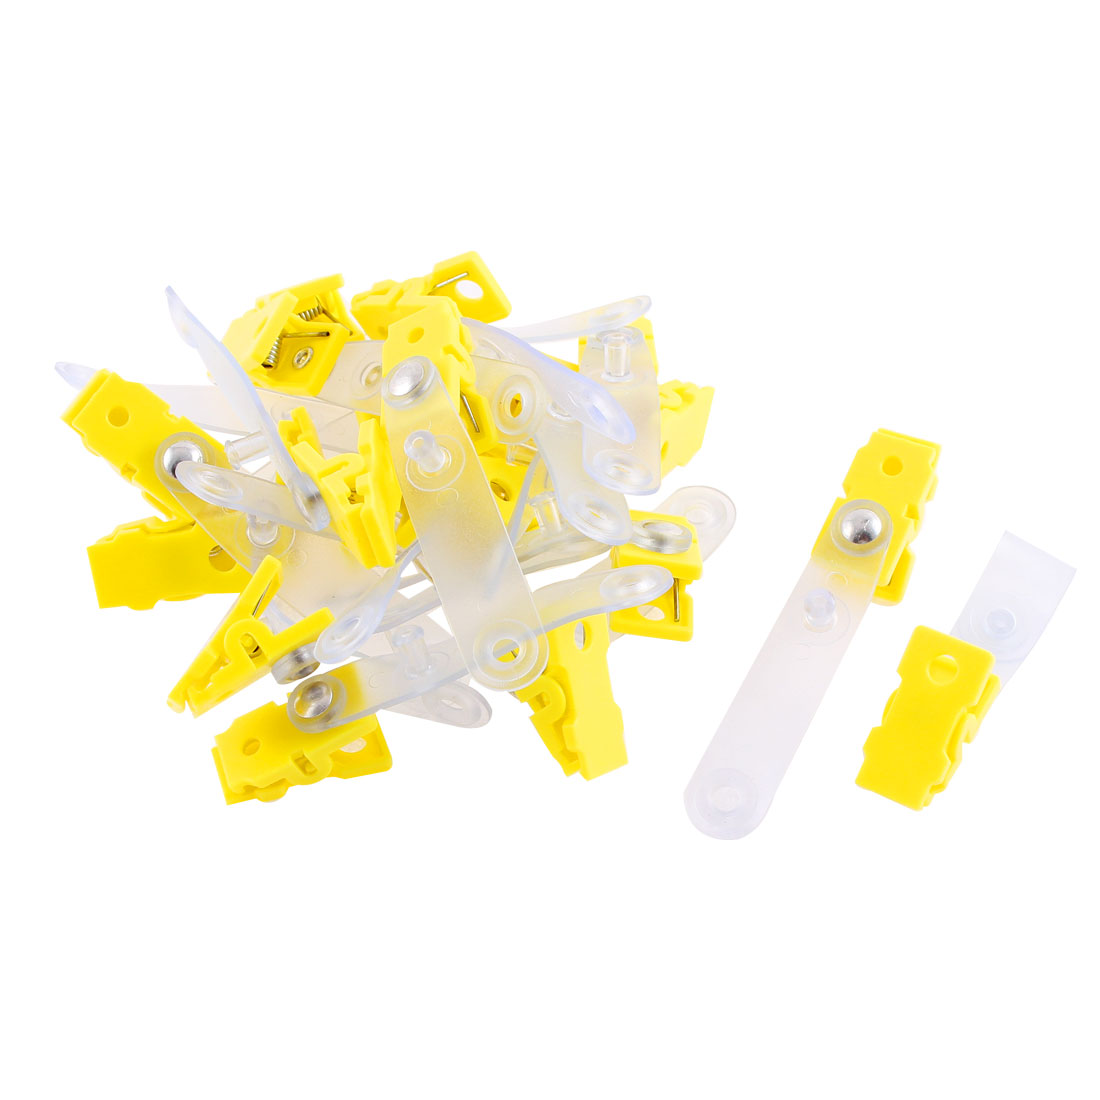 Unique Bargains 20 Pcs Plastic ID Name Office Card Photo Tag Holder Badge Strap Clip Yellow